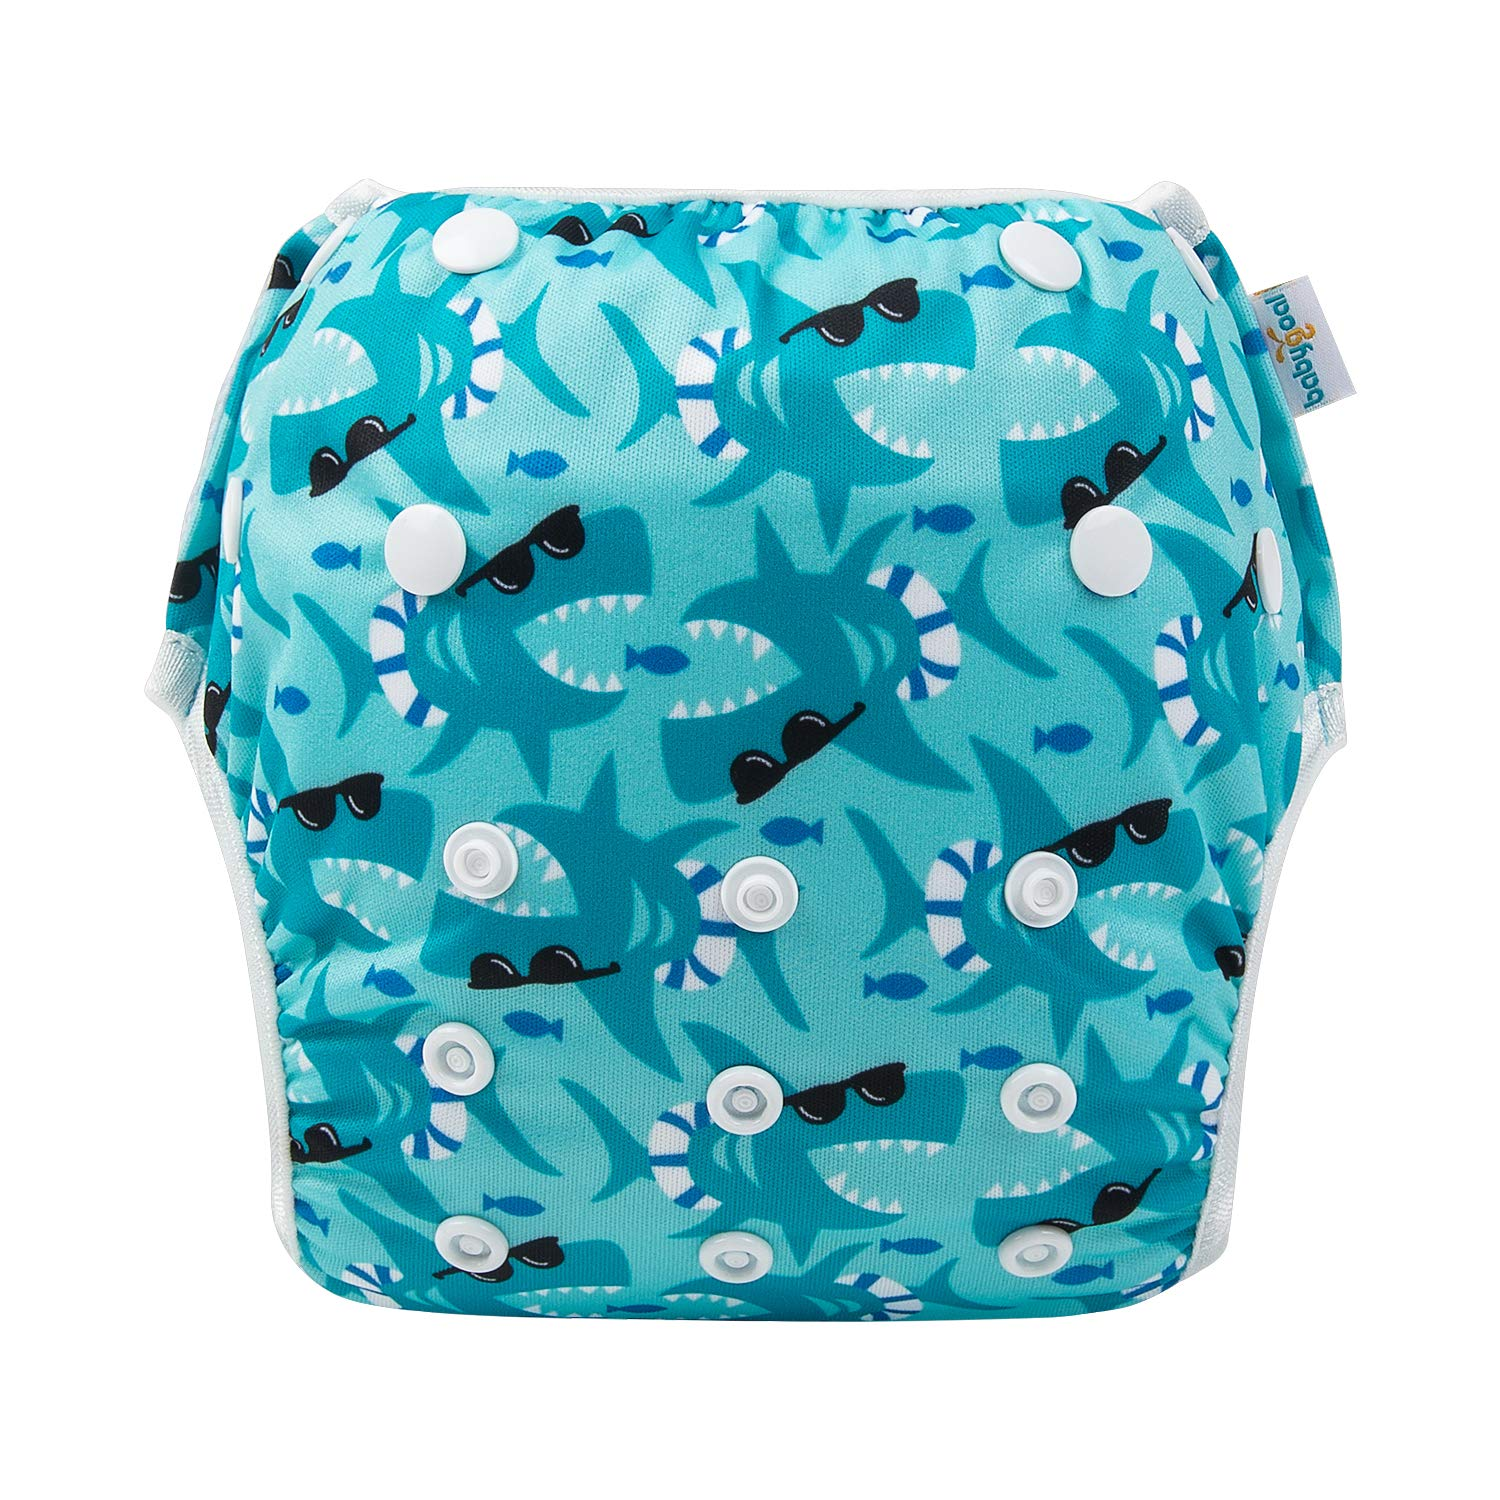 Washable and Adjustable for Babies 0-2 Years Swimming Lessons /& Baby Shower Gift babygoal Baby Reusable Swim Diaper